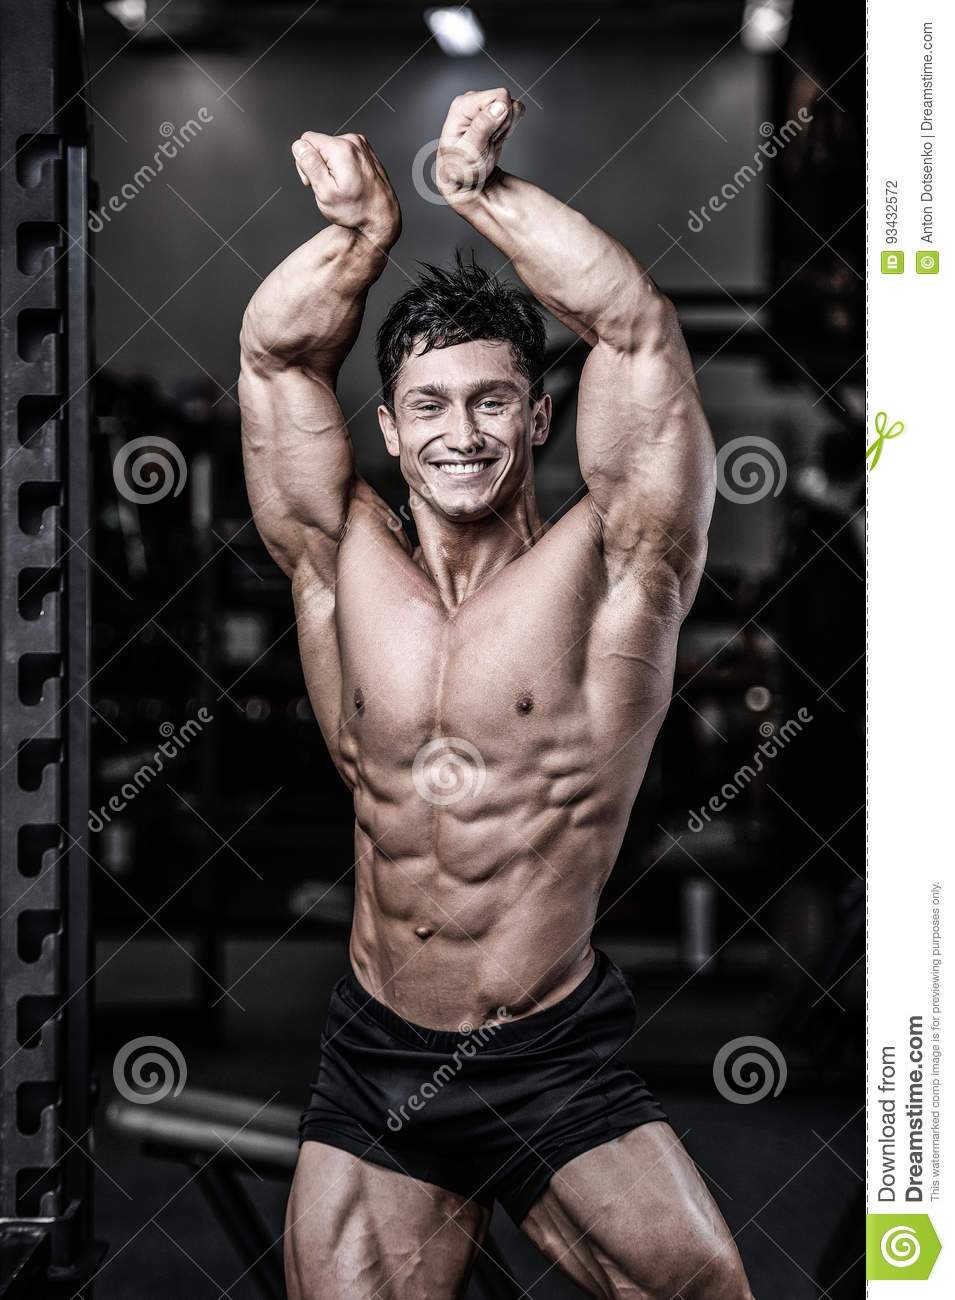 Muscular Man Working Out Doing Exercises With Barbell